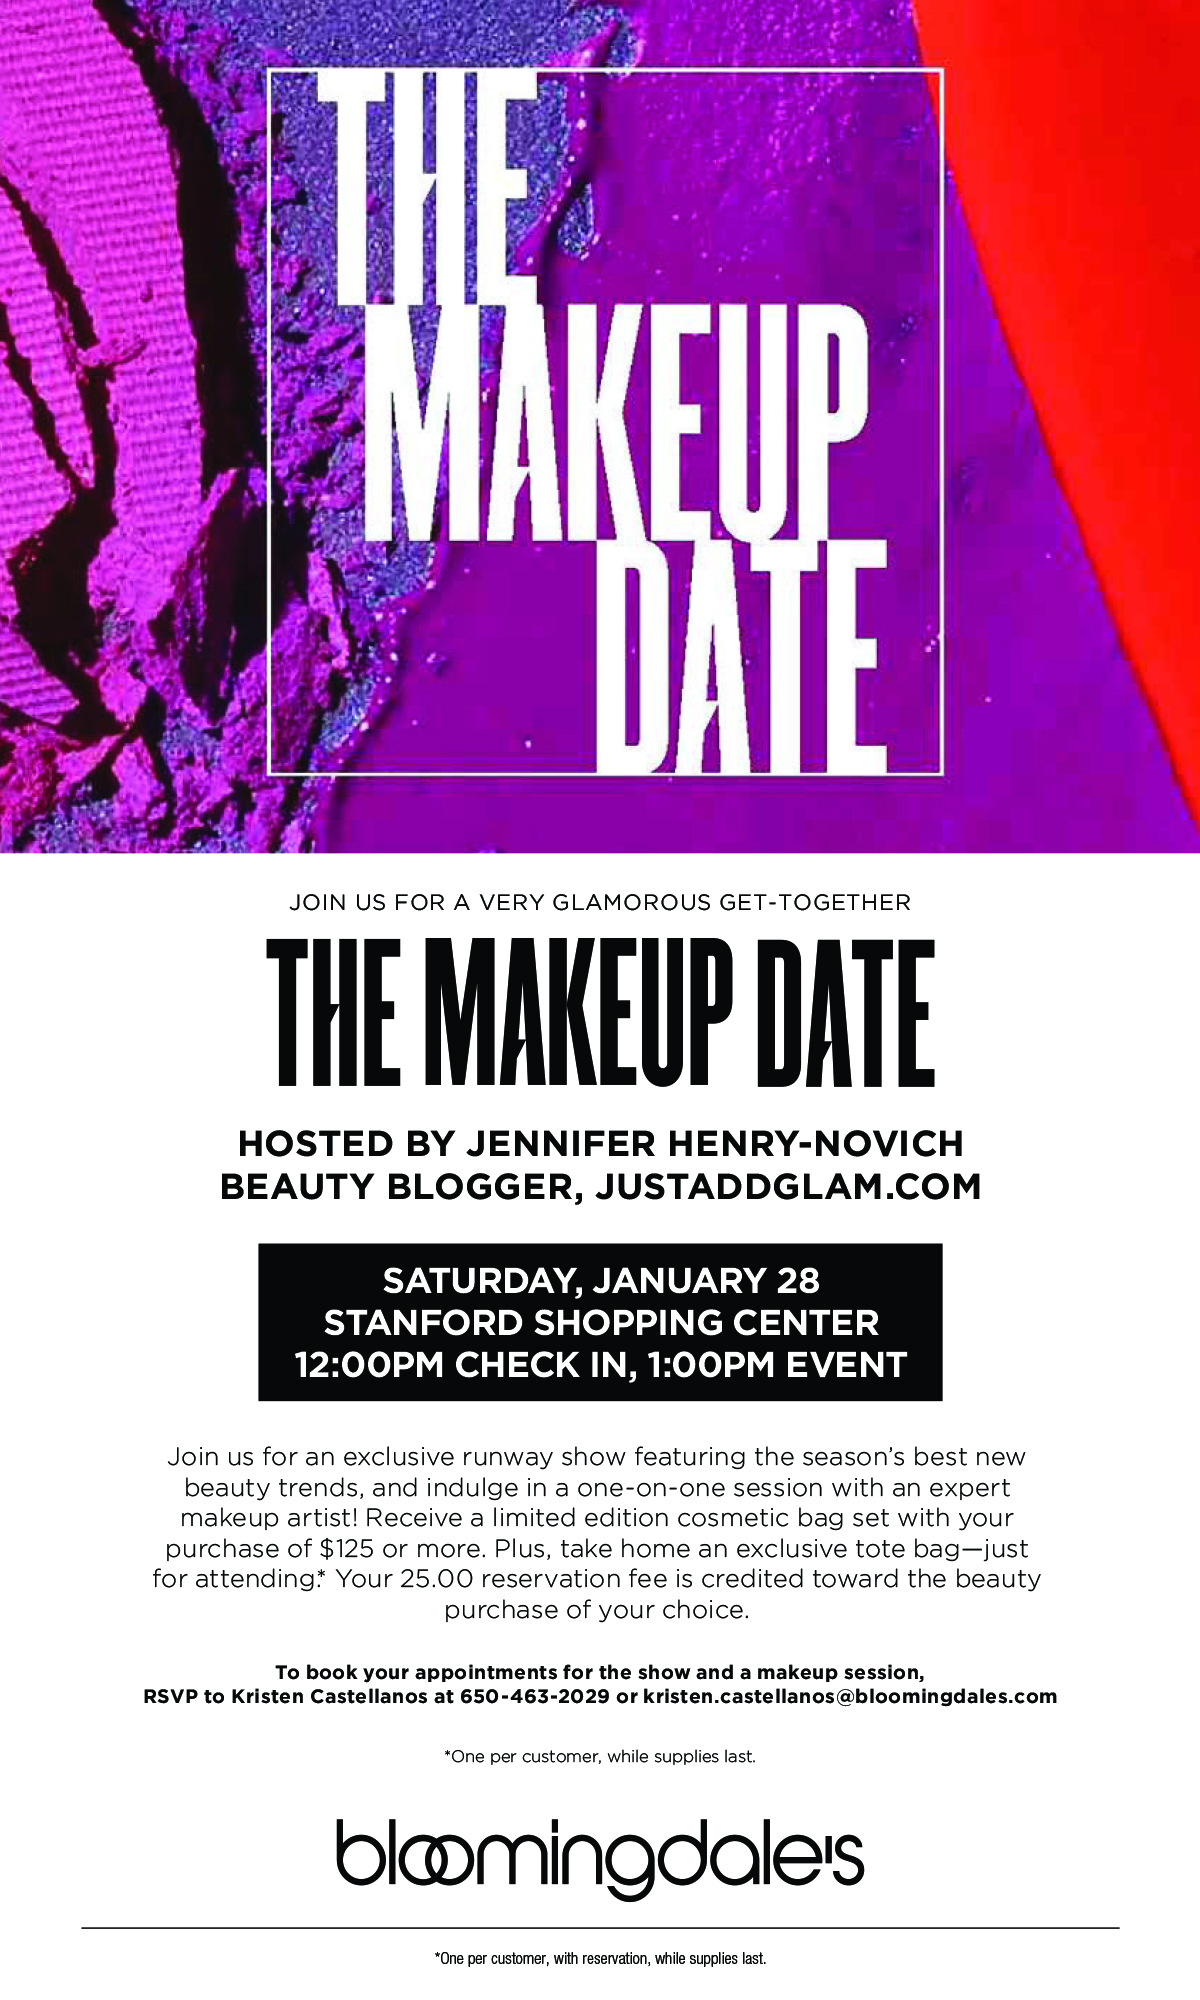 the_makeup_date_bloomingdales_stanford